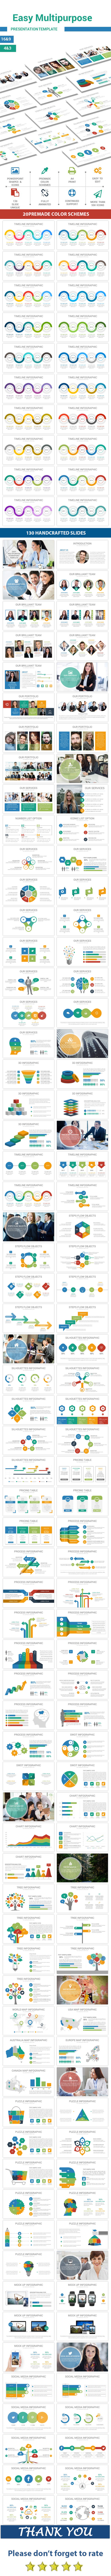 Easy Multipurpose PowerPoint Presentation Template - PowerPoint Templates Presentation Templates